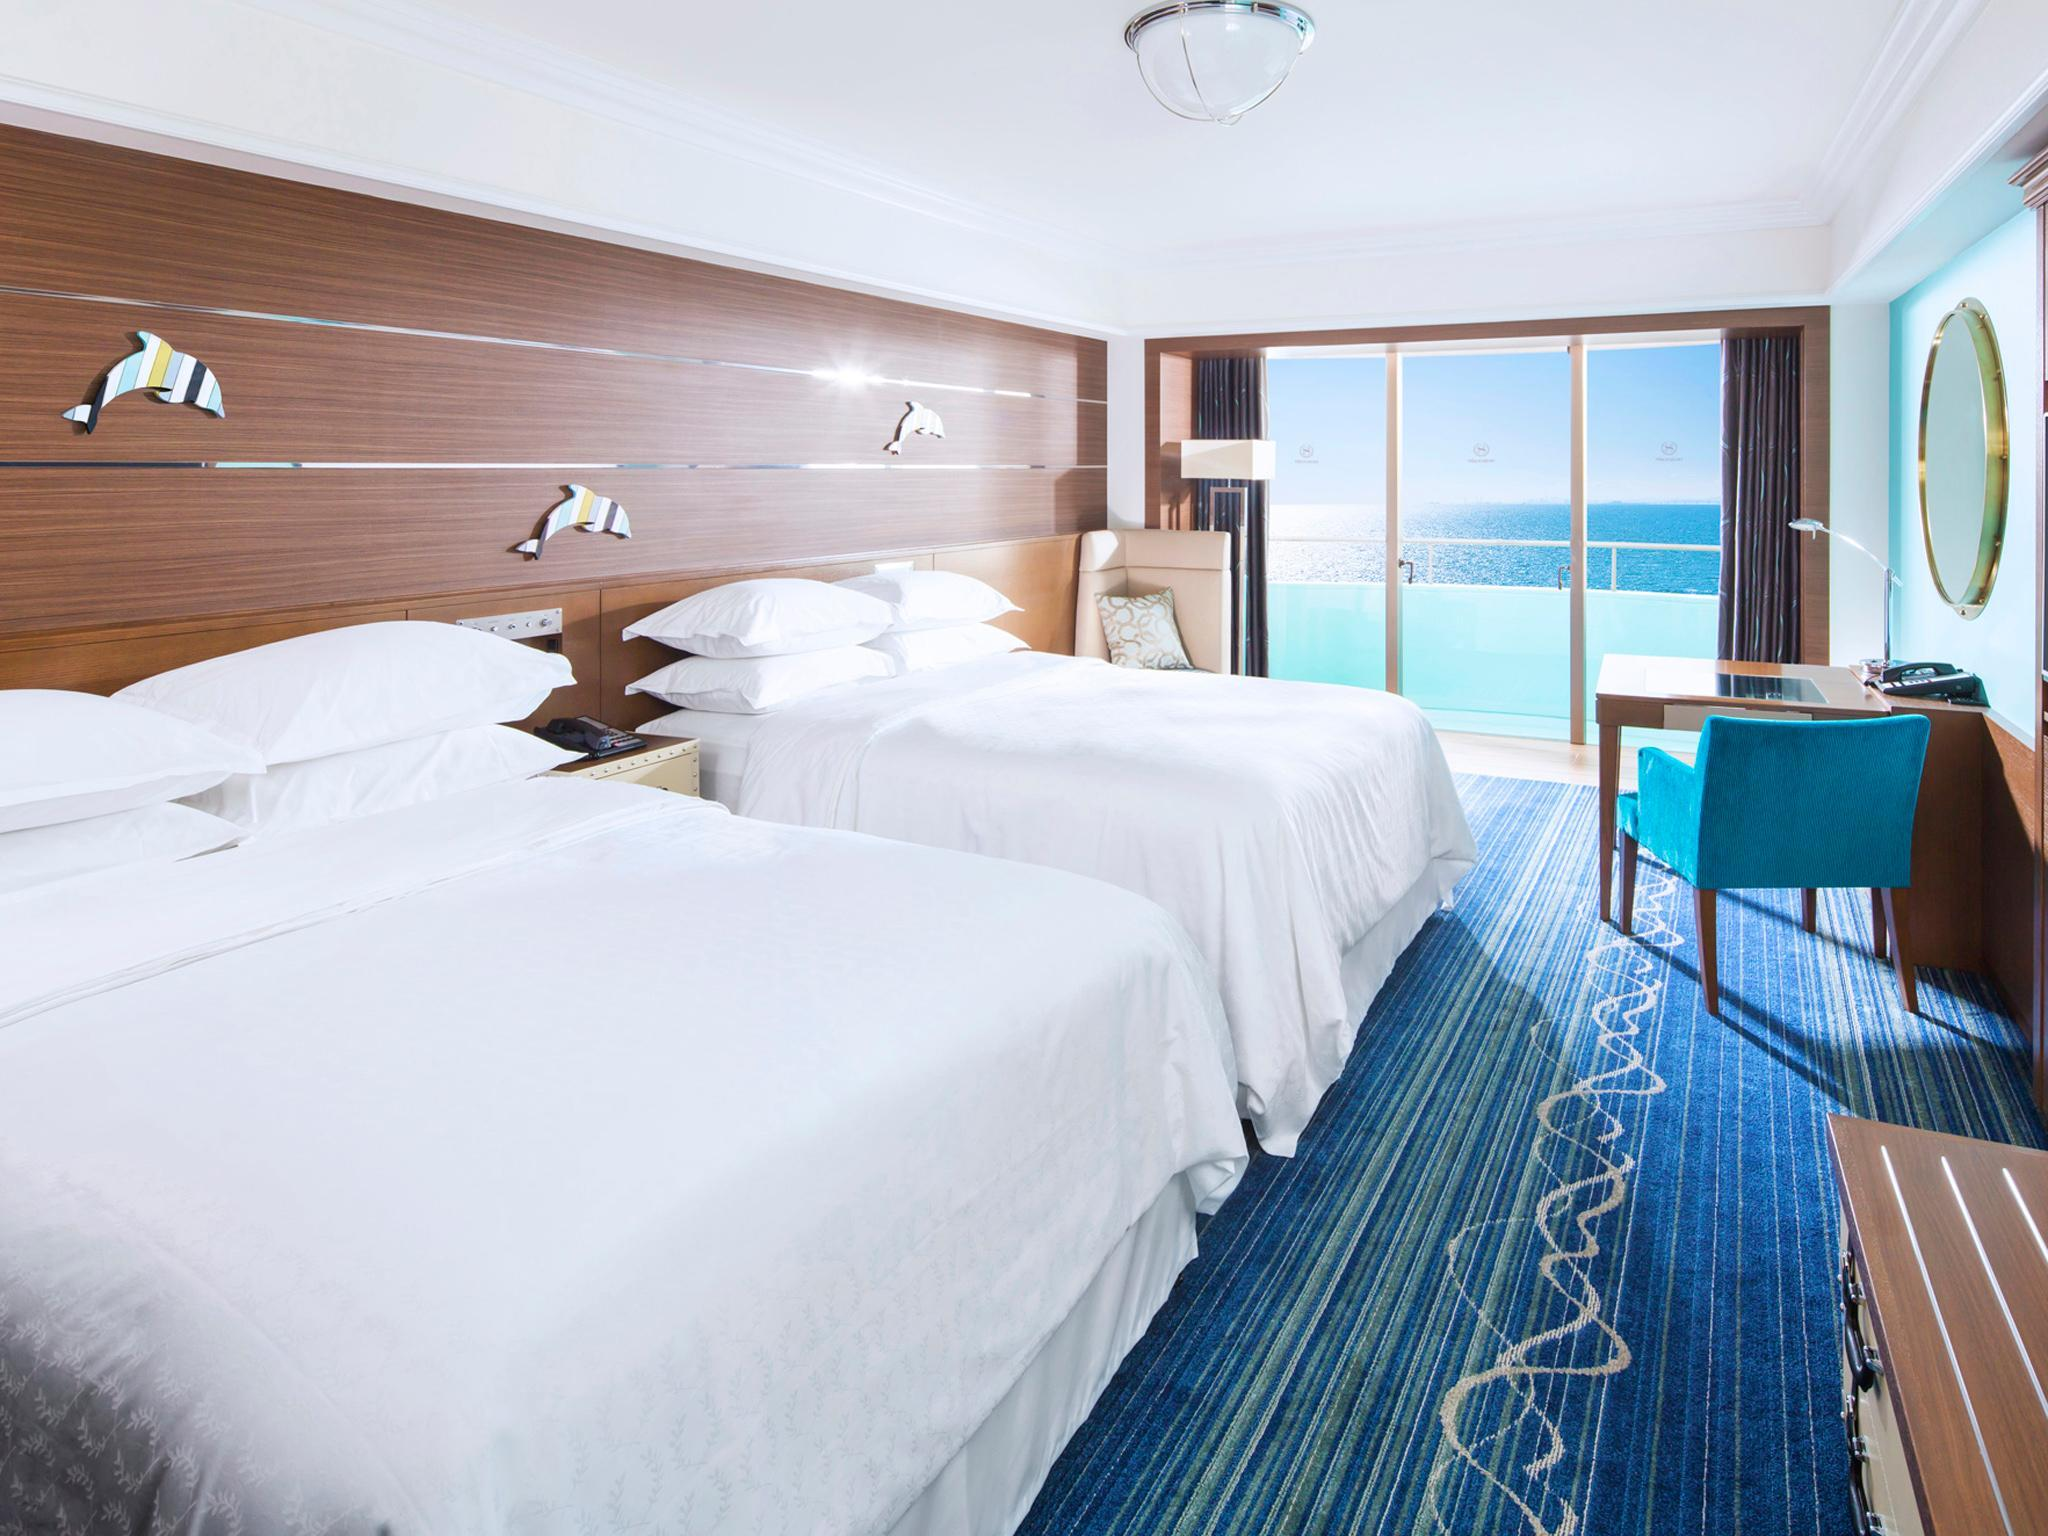 海洋夢幻客房(兩床/本館) (Ocean Dream 2 Beds, Guest room, 2 Double, Main building)